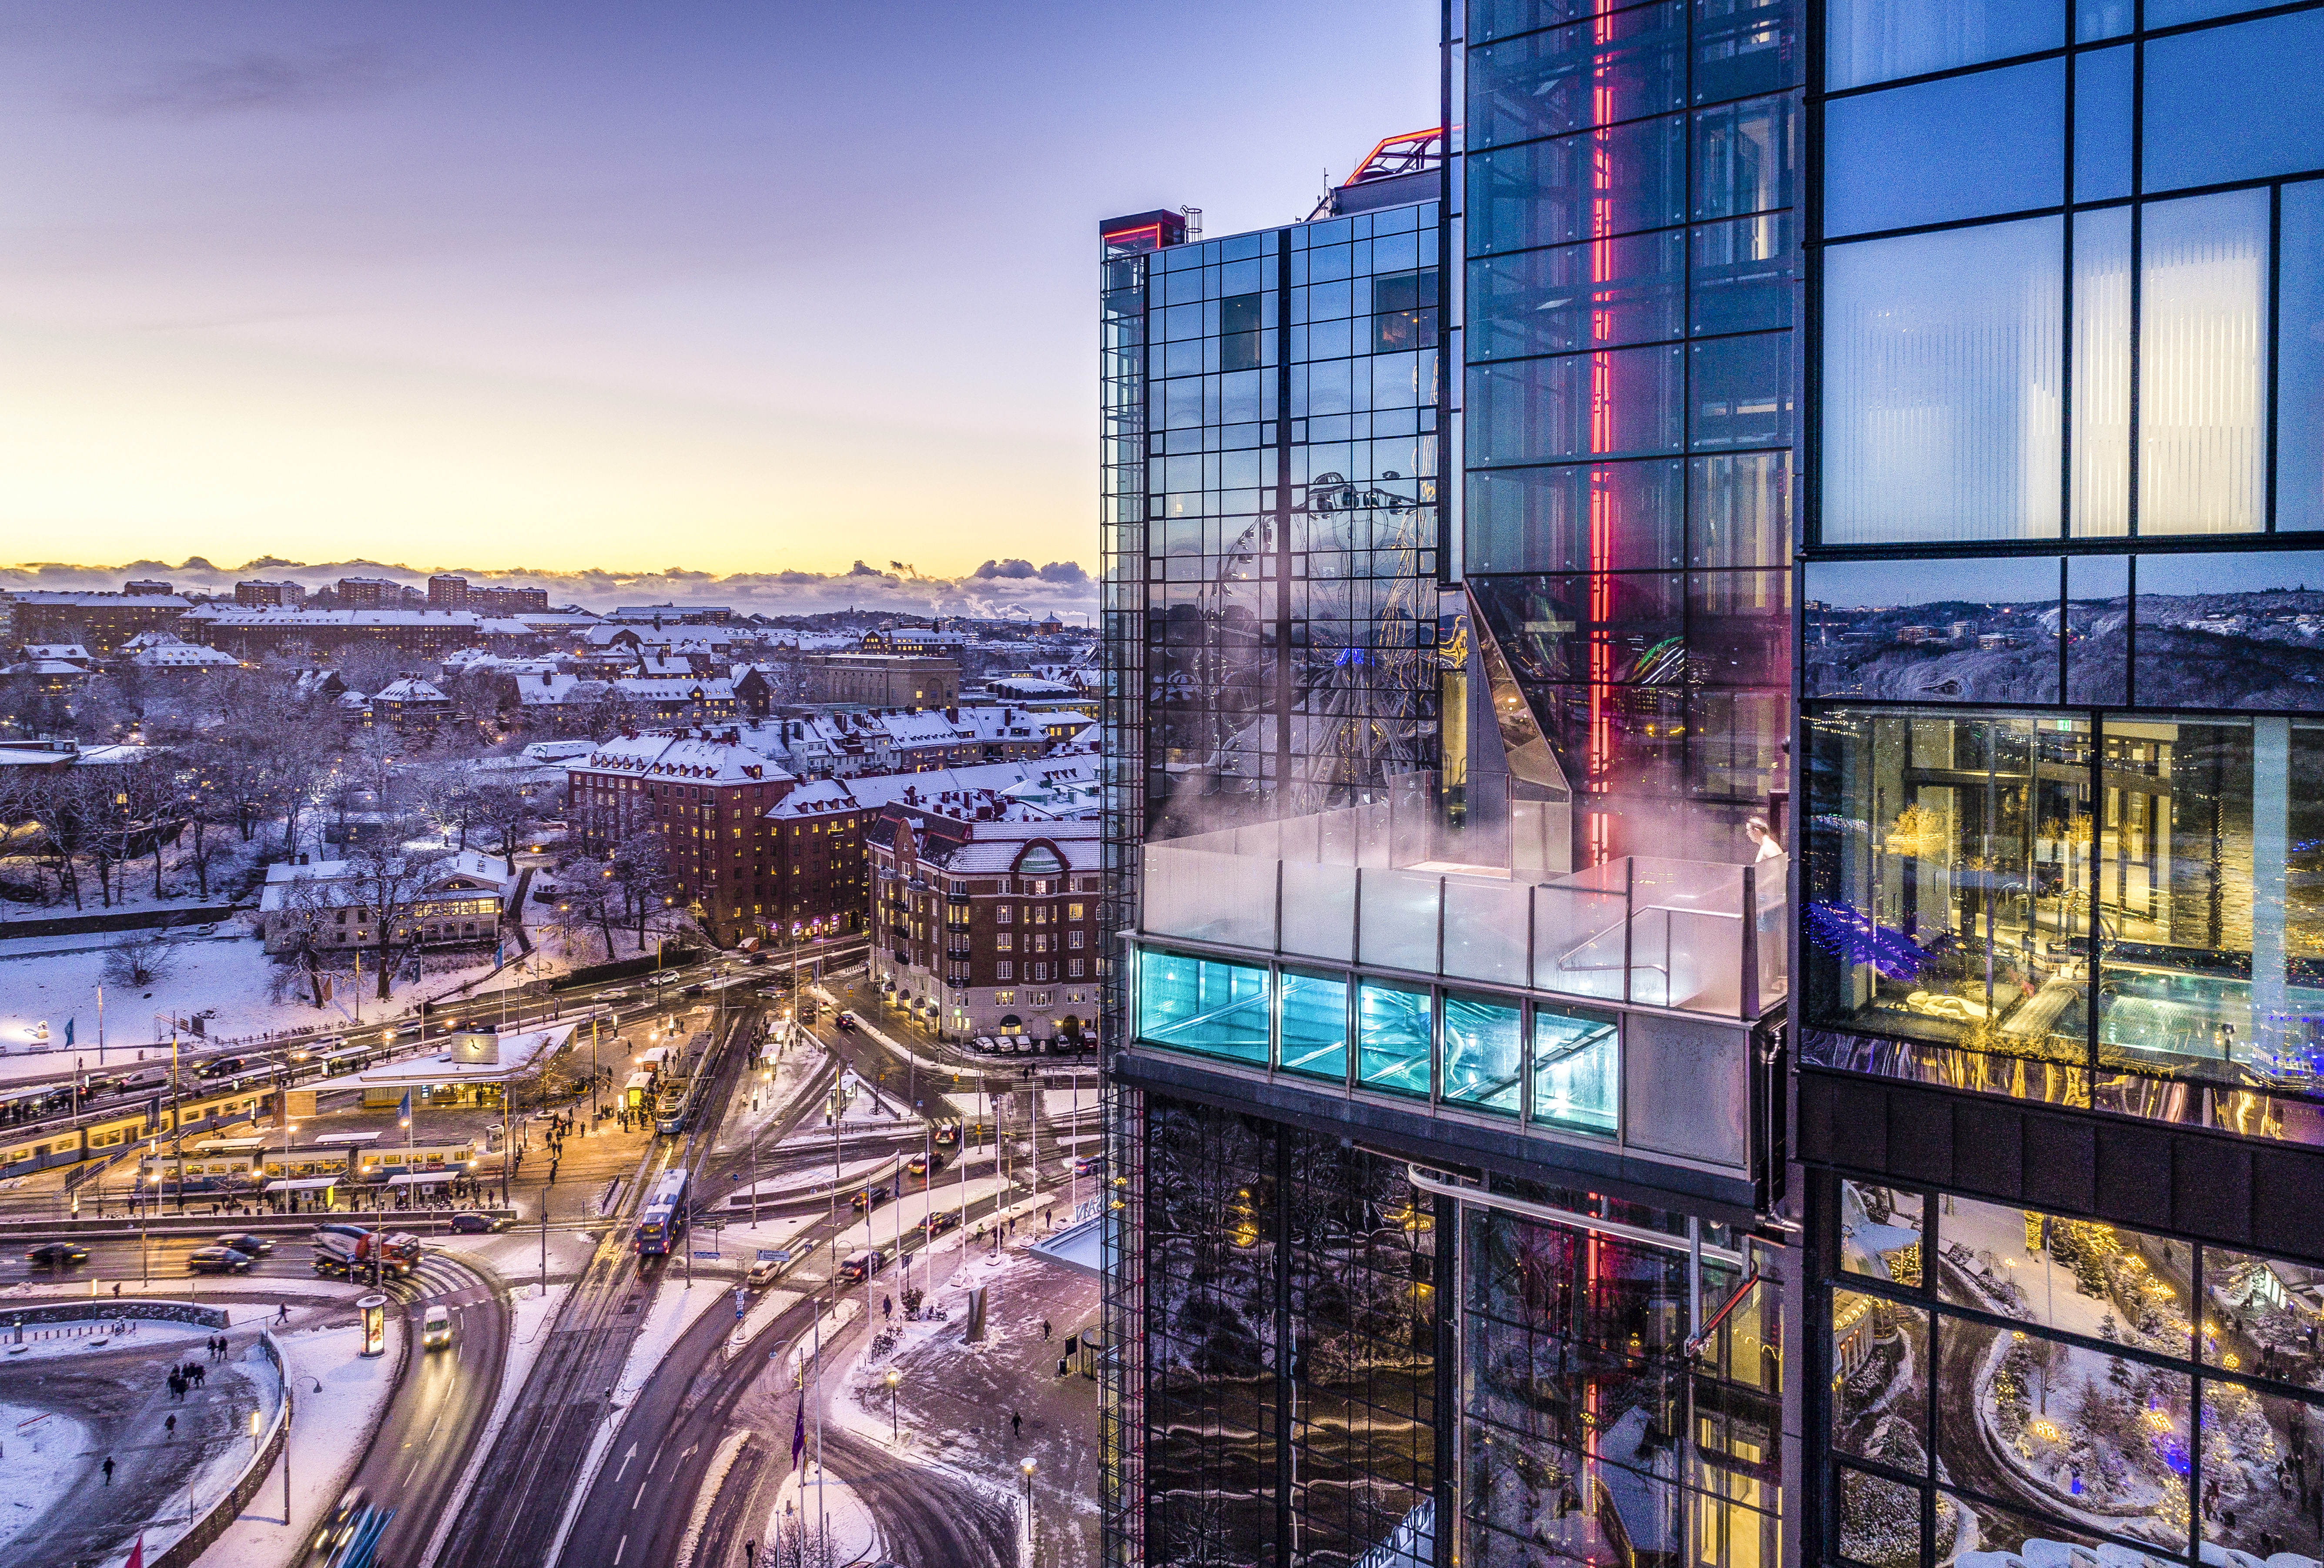 The Product Leadership Days conference hosted by Tolpagorni Product Management took place in Gothia Towers in Gothenburg, Sweden.